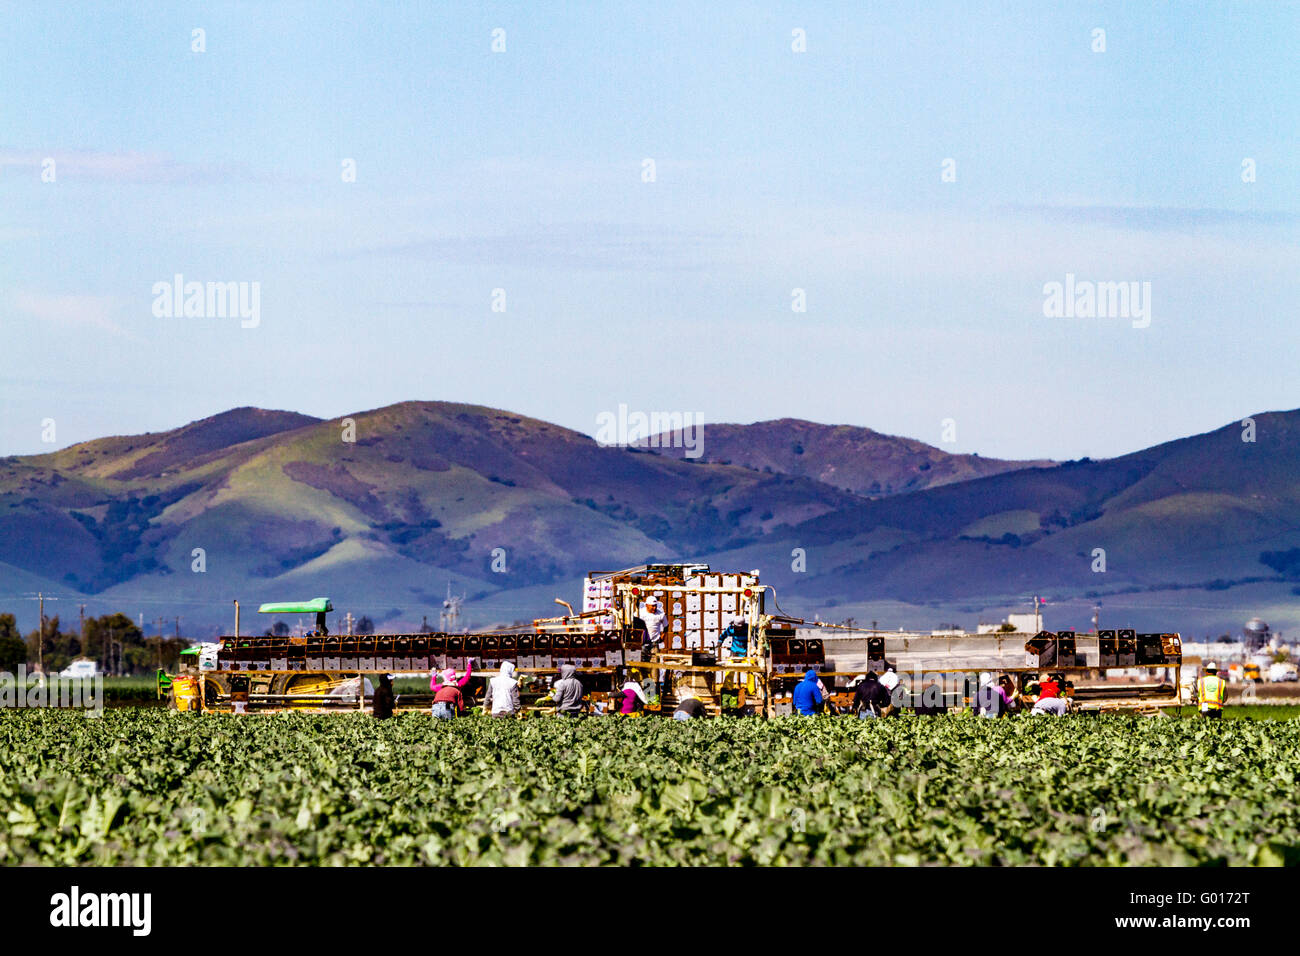 Farm workers using a mechanized packing system in the fields in the Salinas Valley of California USA - Stock Image